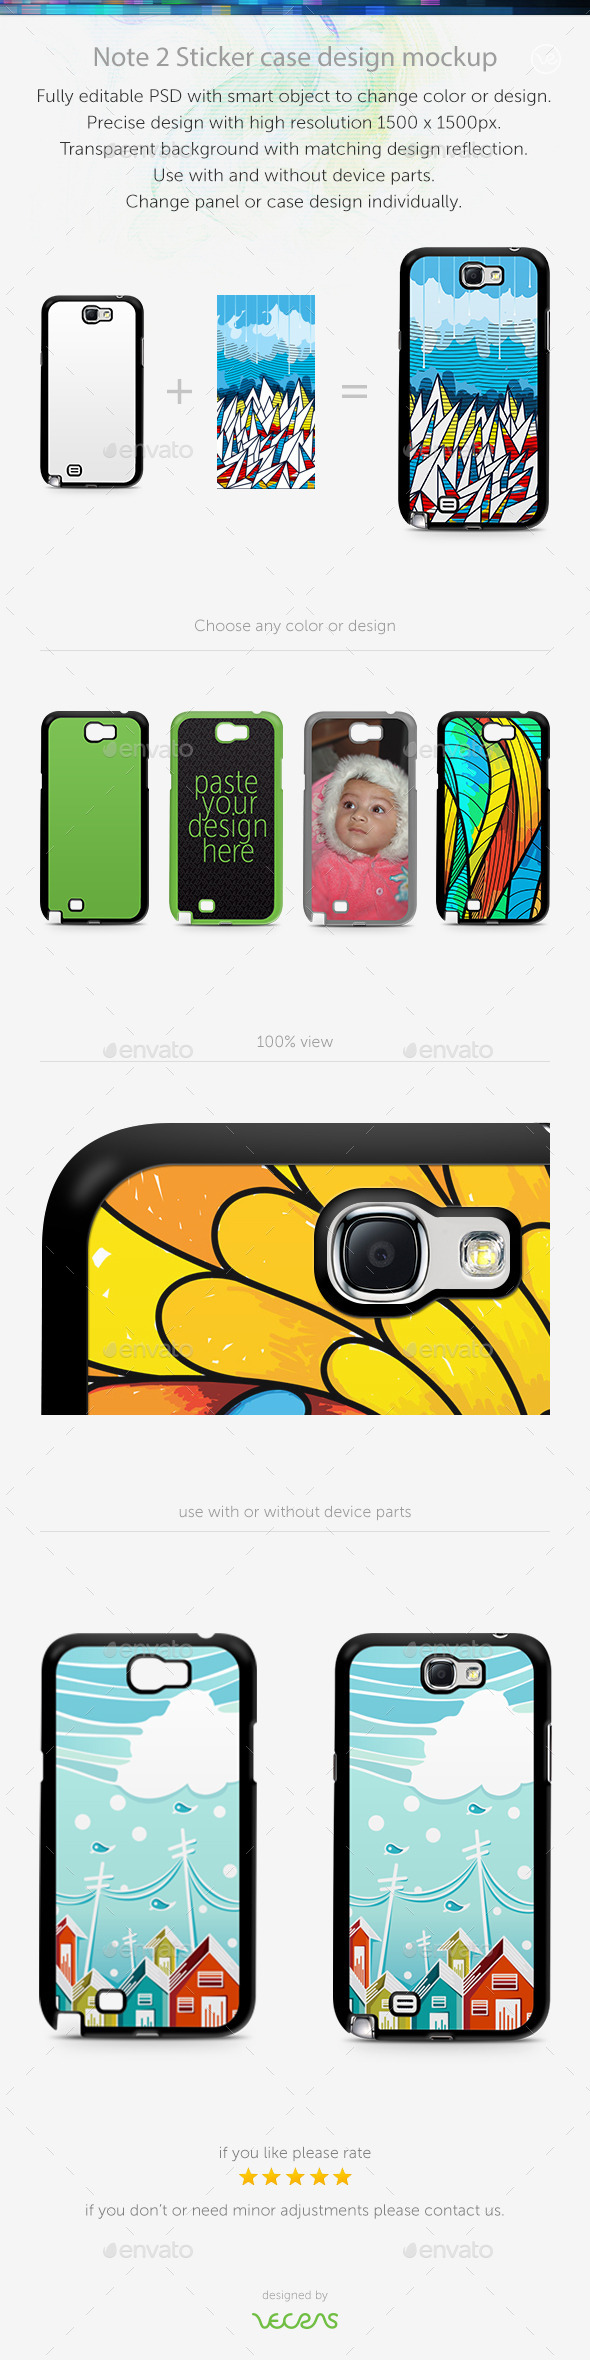 GraphicRiver Note 2 Sticker Case Design Mockup 10400934